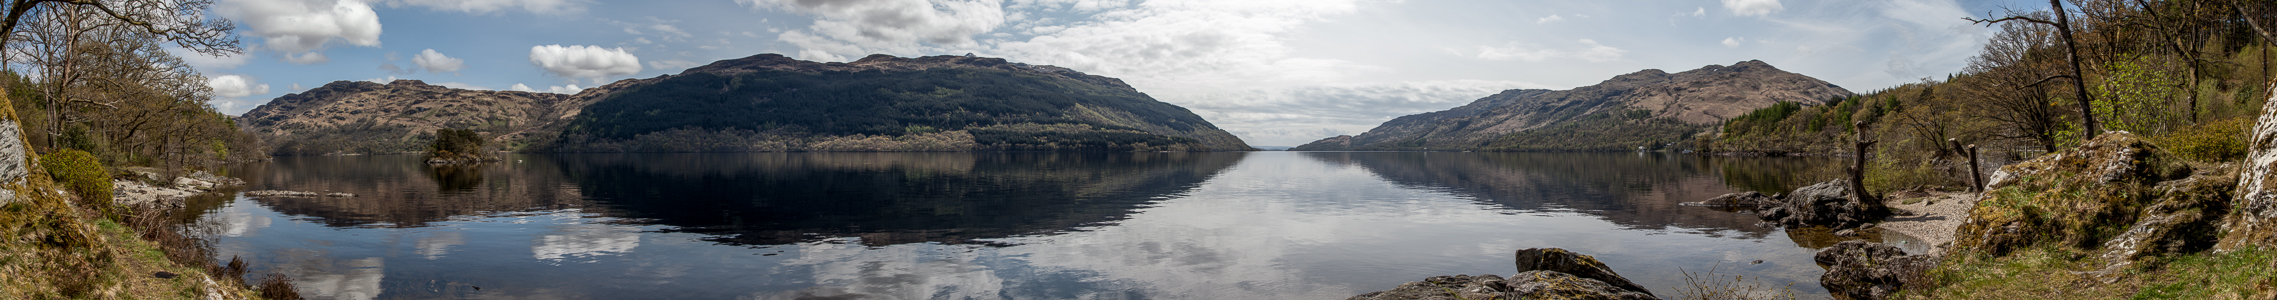 Tarbet (Argyll and Bute) Loch Lomond and The Trossachs National Park